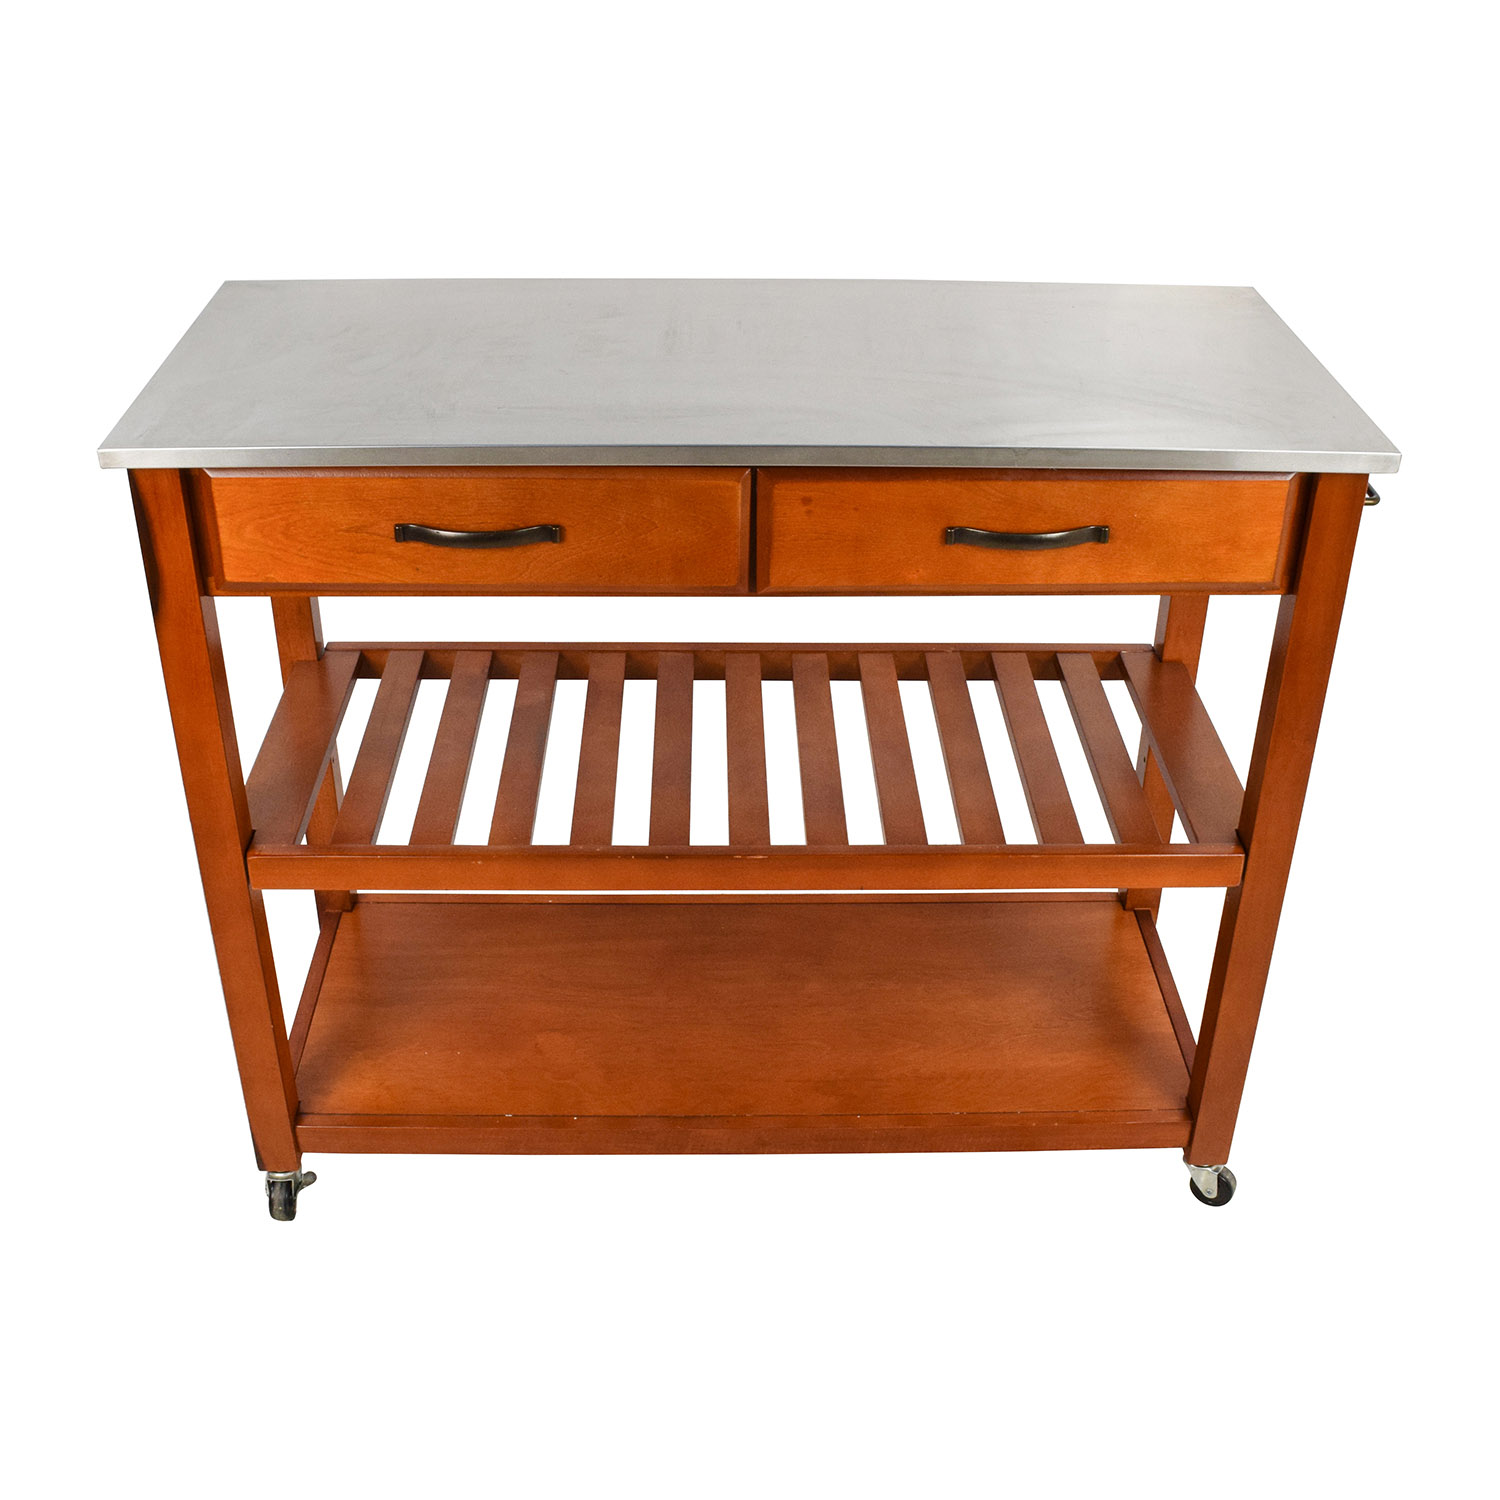 utility tables kitchen utility table Crosley Crosley Natural Wood Top Kitchen Cart and Island second hand